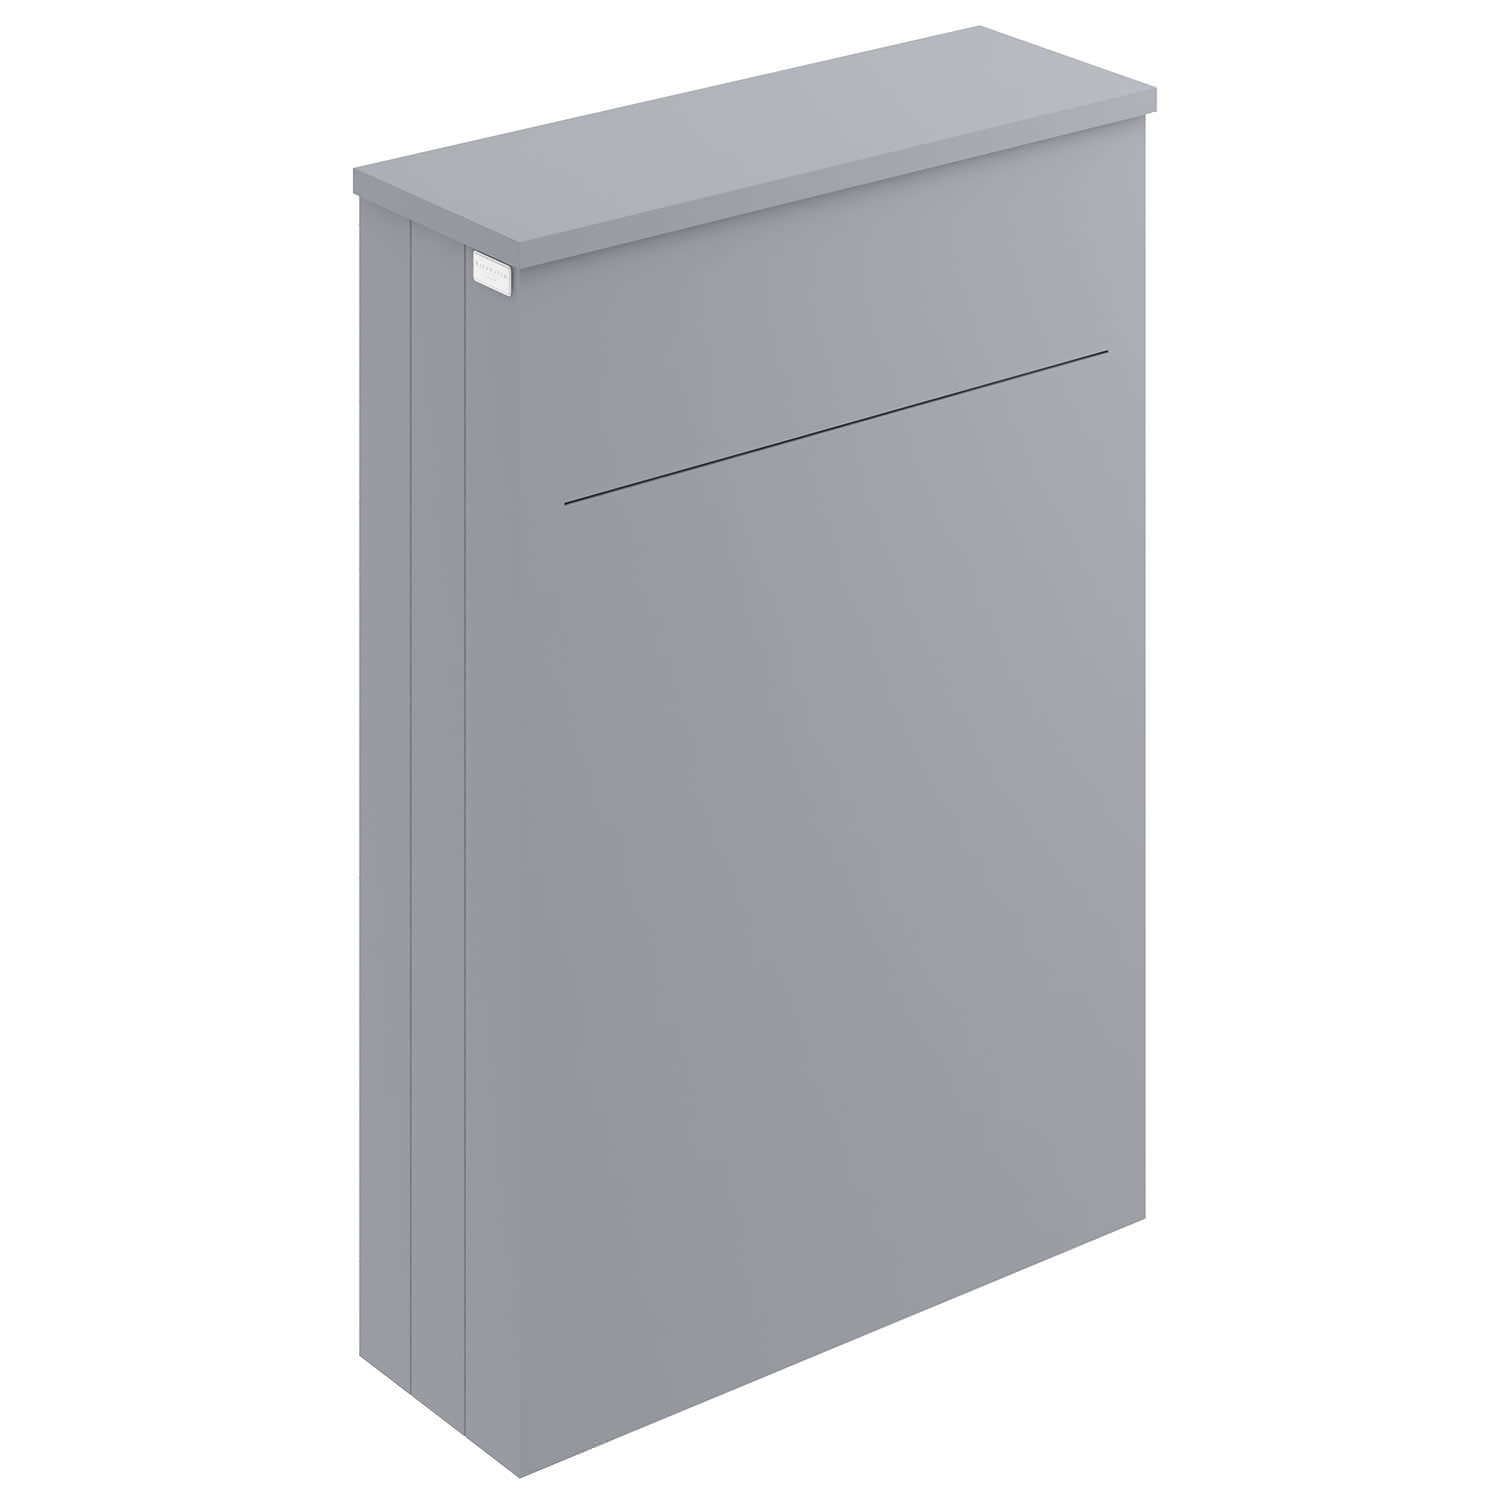 Bayswater 550mm Wc Cabinet Bayf121 More Finishes Available